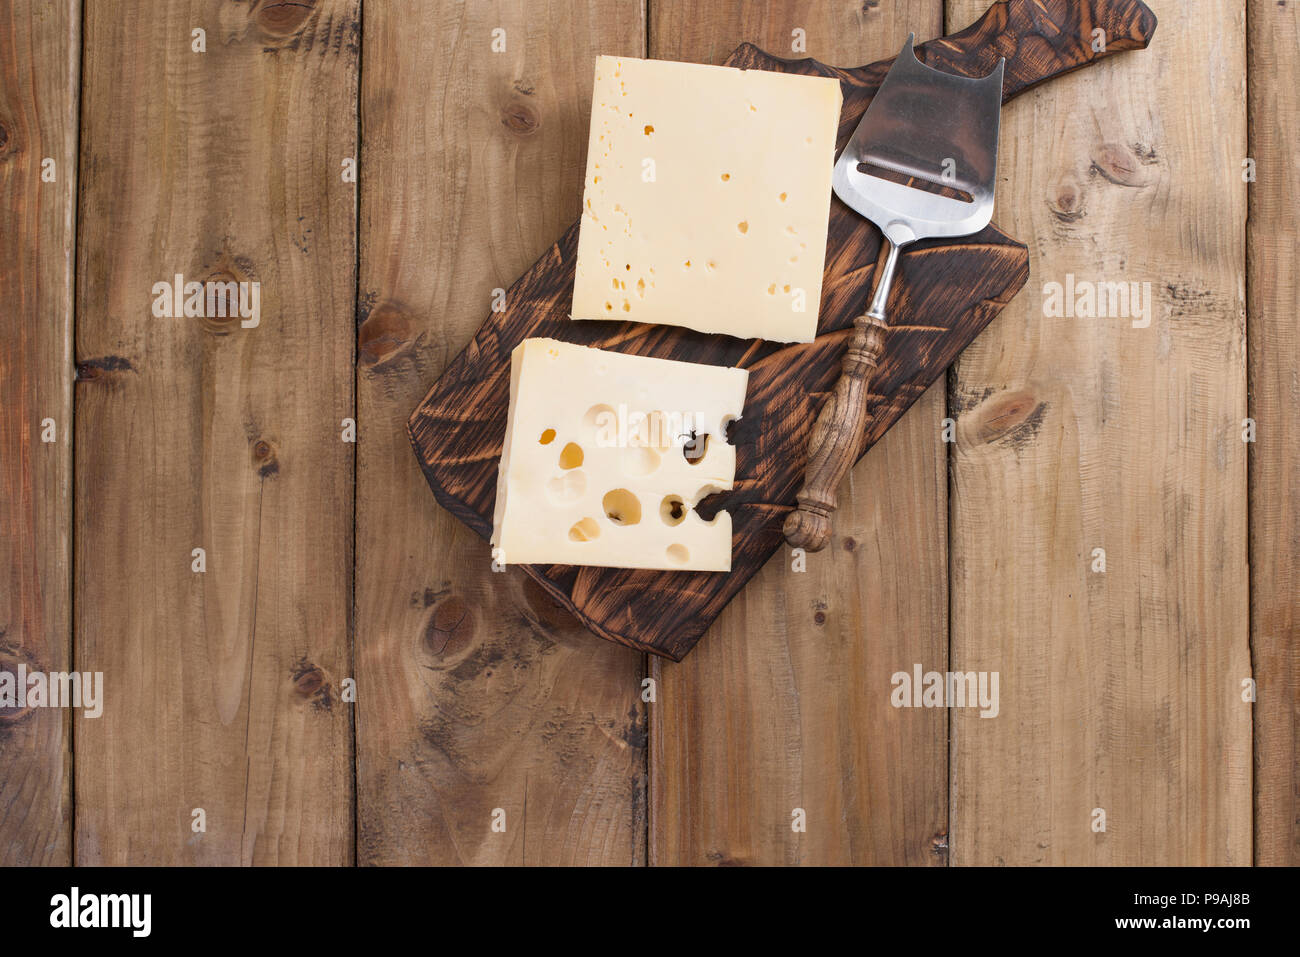 Dutch cheese with holes on a wooden old board and cheese knead. Vintage photo. Dairy. Free space for text. Copy space - Stock Image